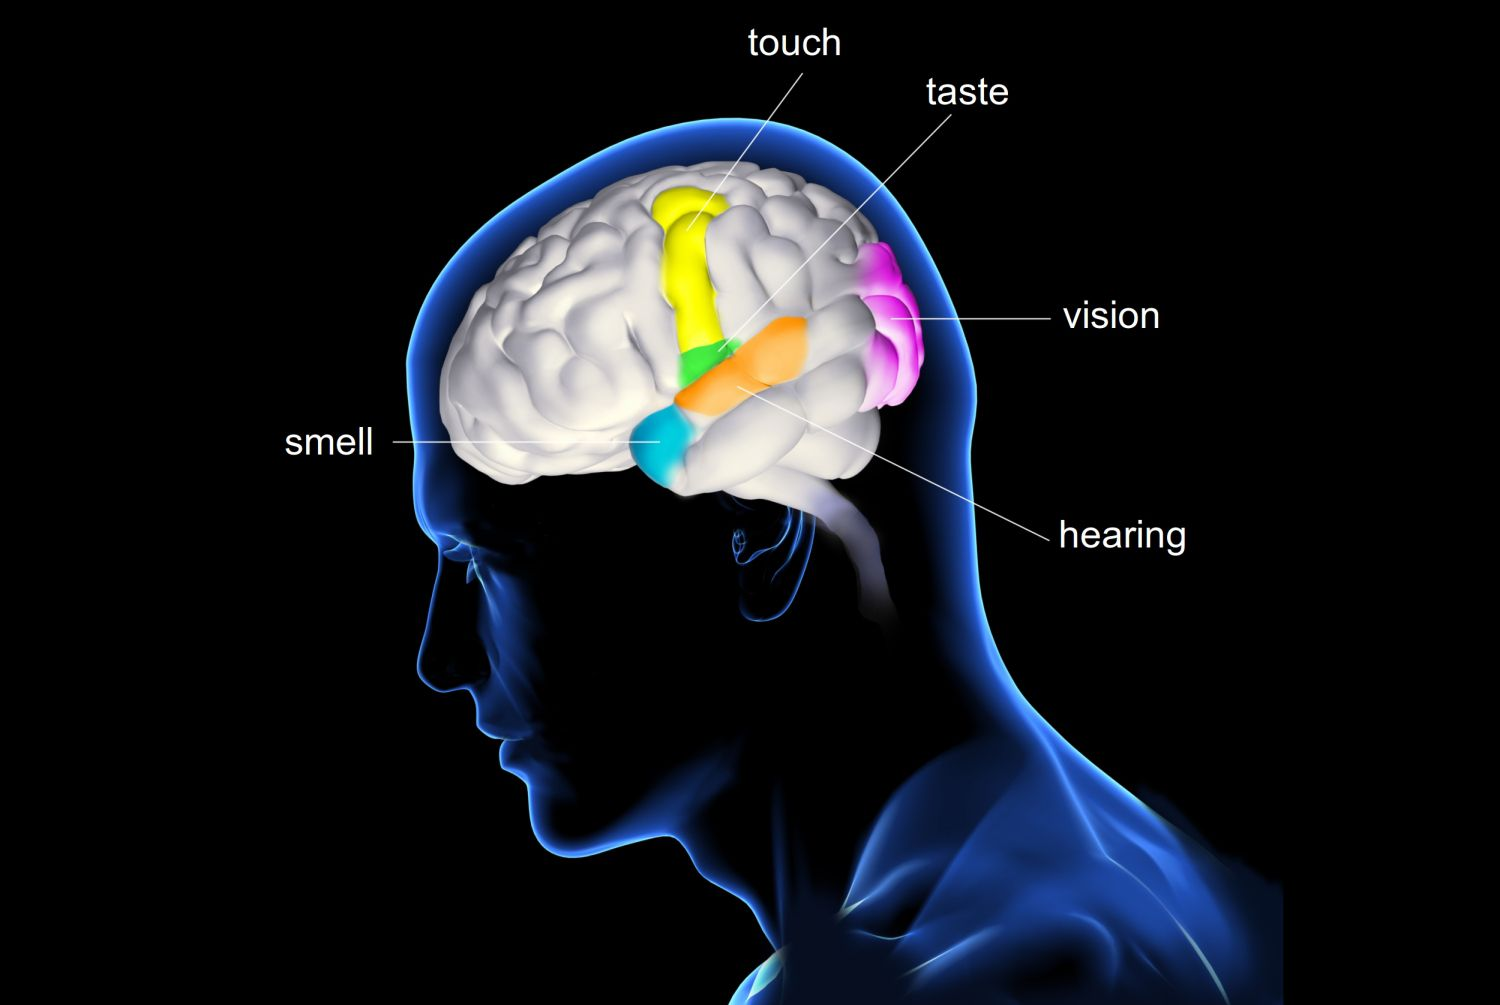 Overview Of The Five Senses